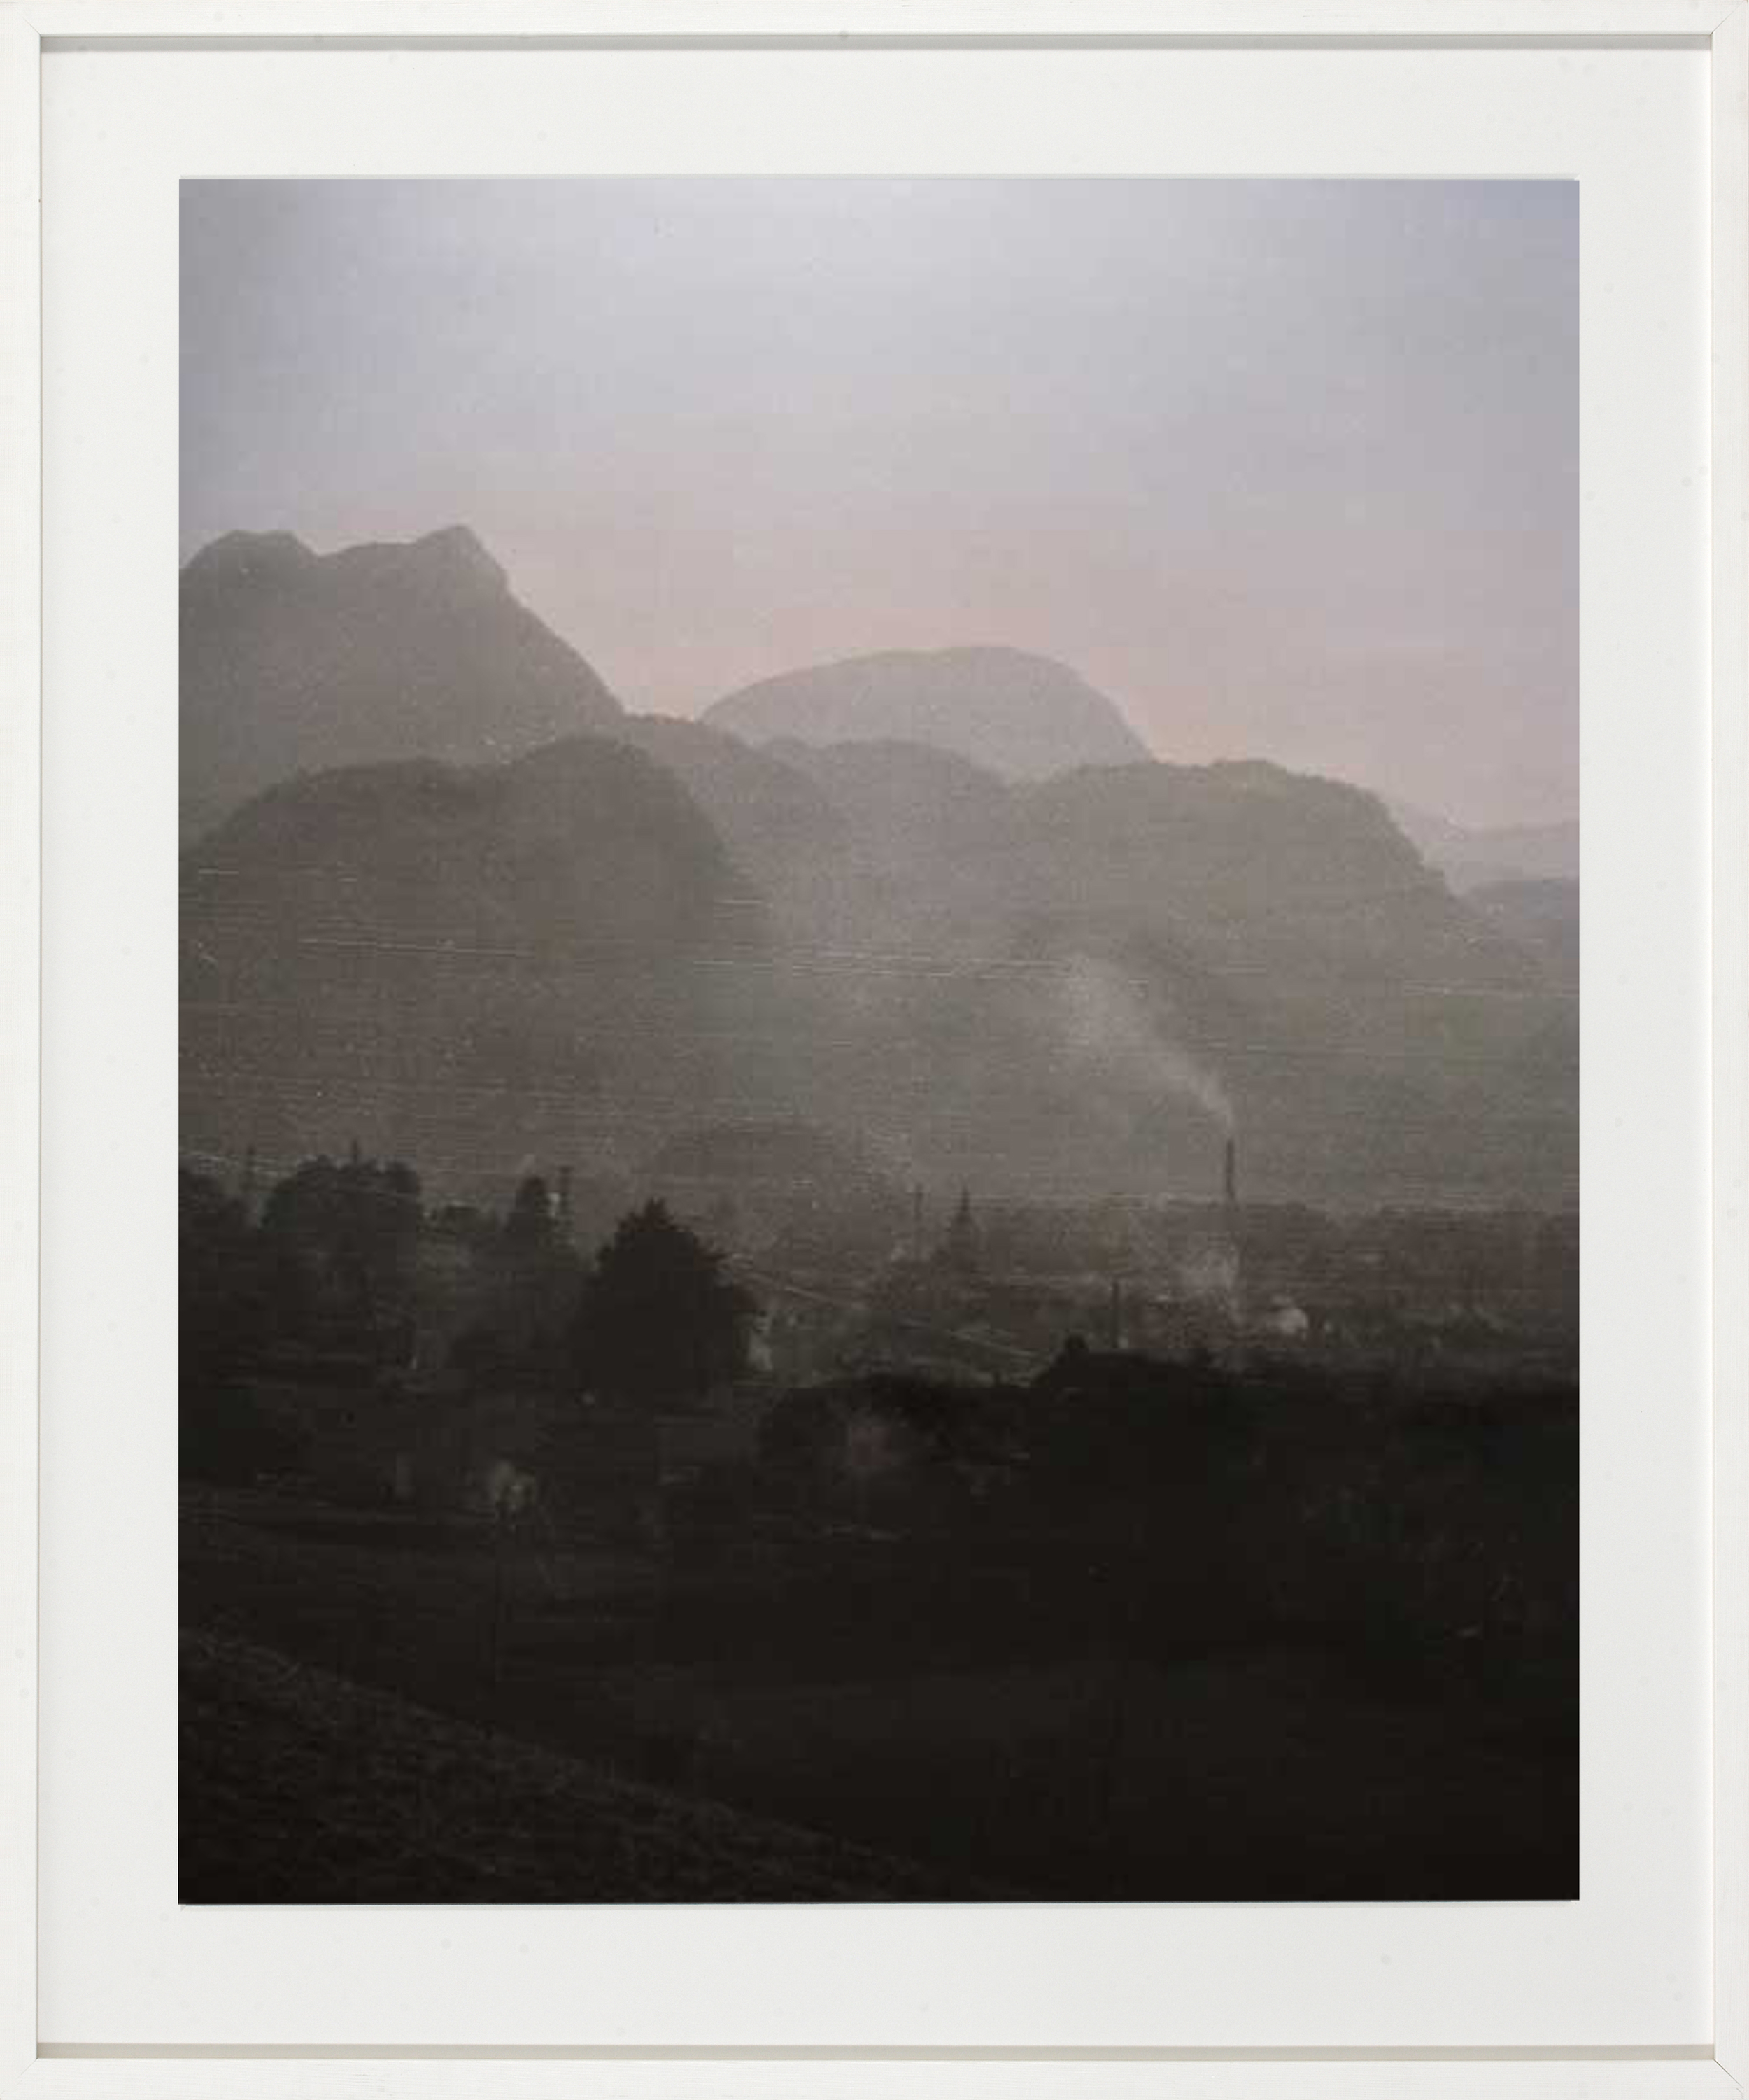 Petra-Lindholm-The-Village-inkjet-print-hand-colored-100x87.5cm-2012.jpg